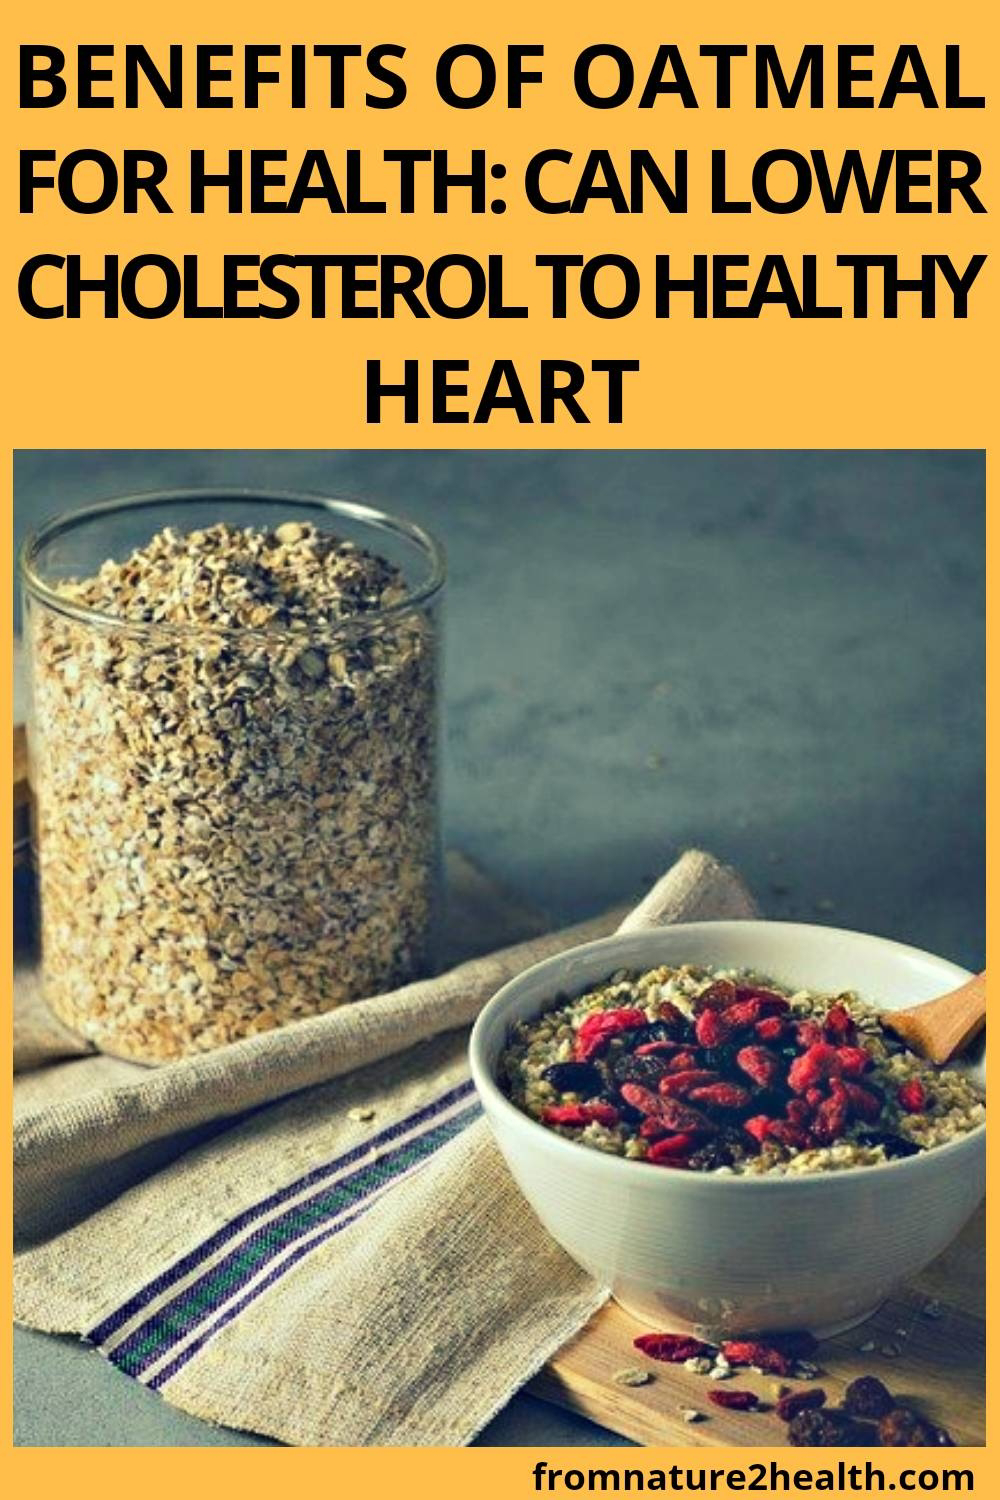 Benefits of Oatmeal for Health: Can Lower Cholesterol to Healthy Heart